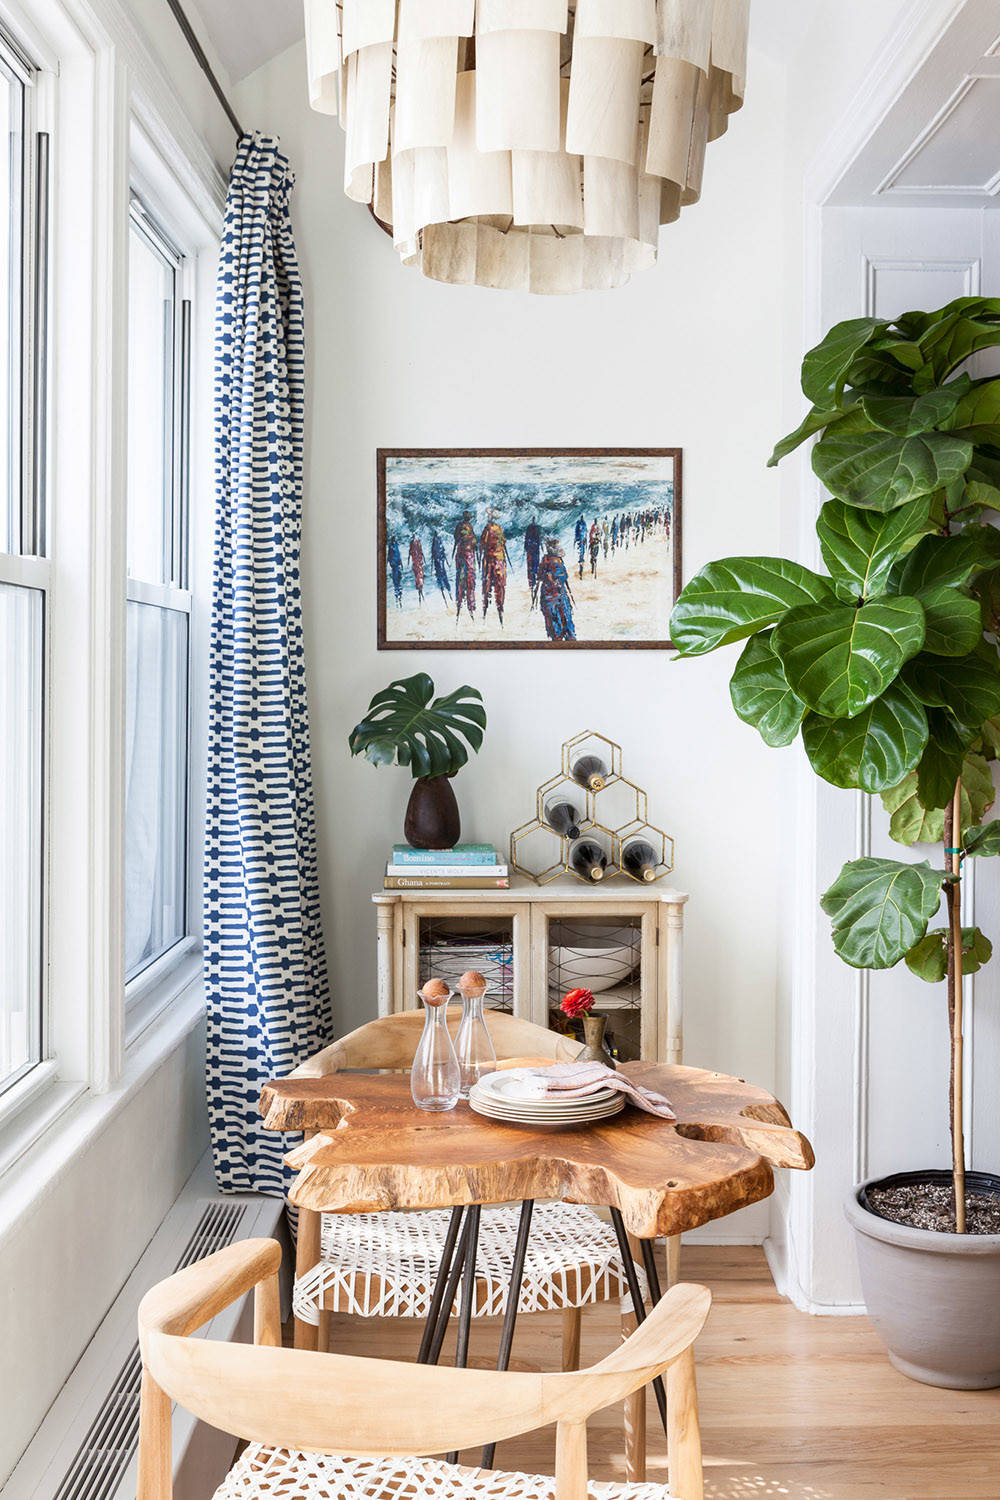 Tiny eclectic dining space inside the small NYC apartment that offers a view of the city skyline outside